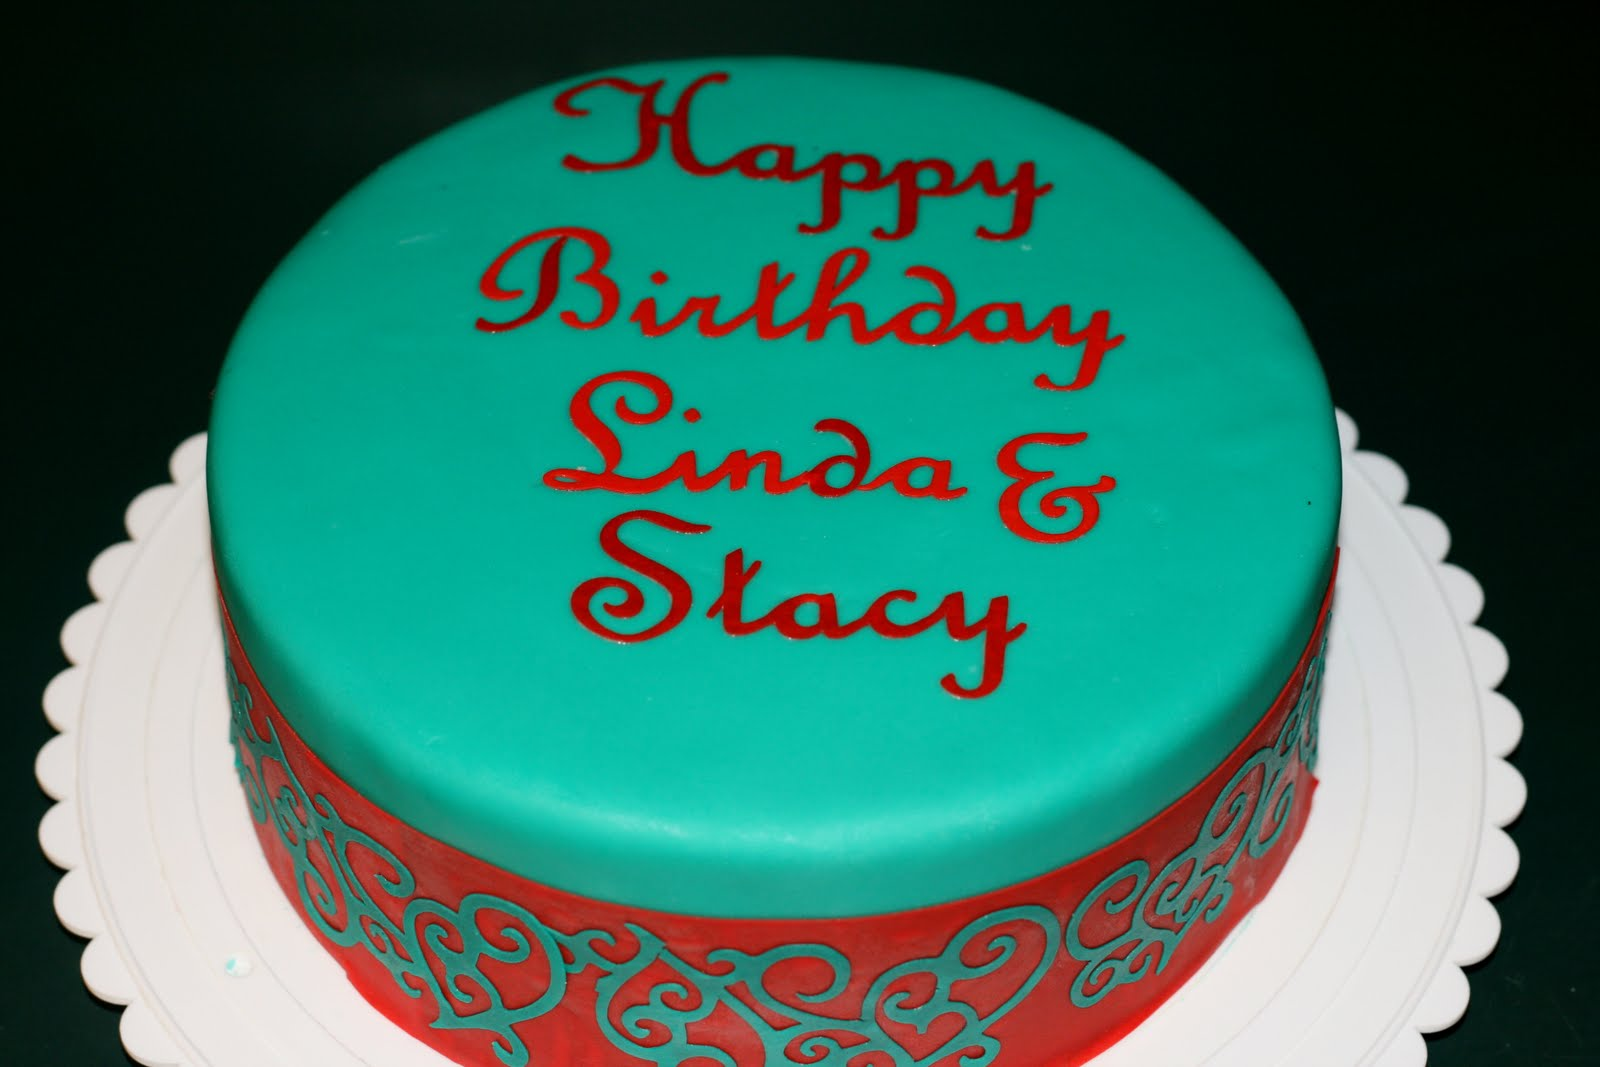 Cakes At Hy Vee Baby Shower Tittle Birthday Cake Trolls Poppy Show Me A Smile 8244 Aisles Online Grocery 109 Best Bakery Department